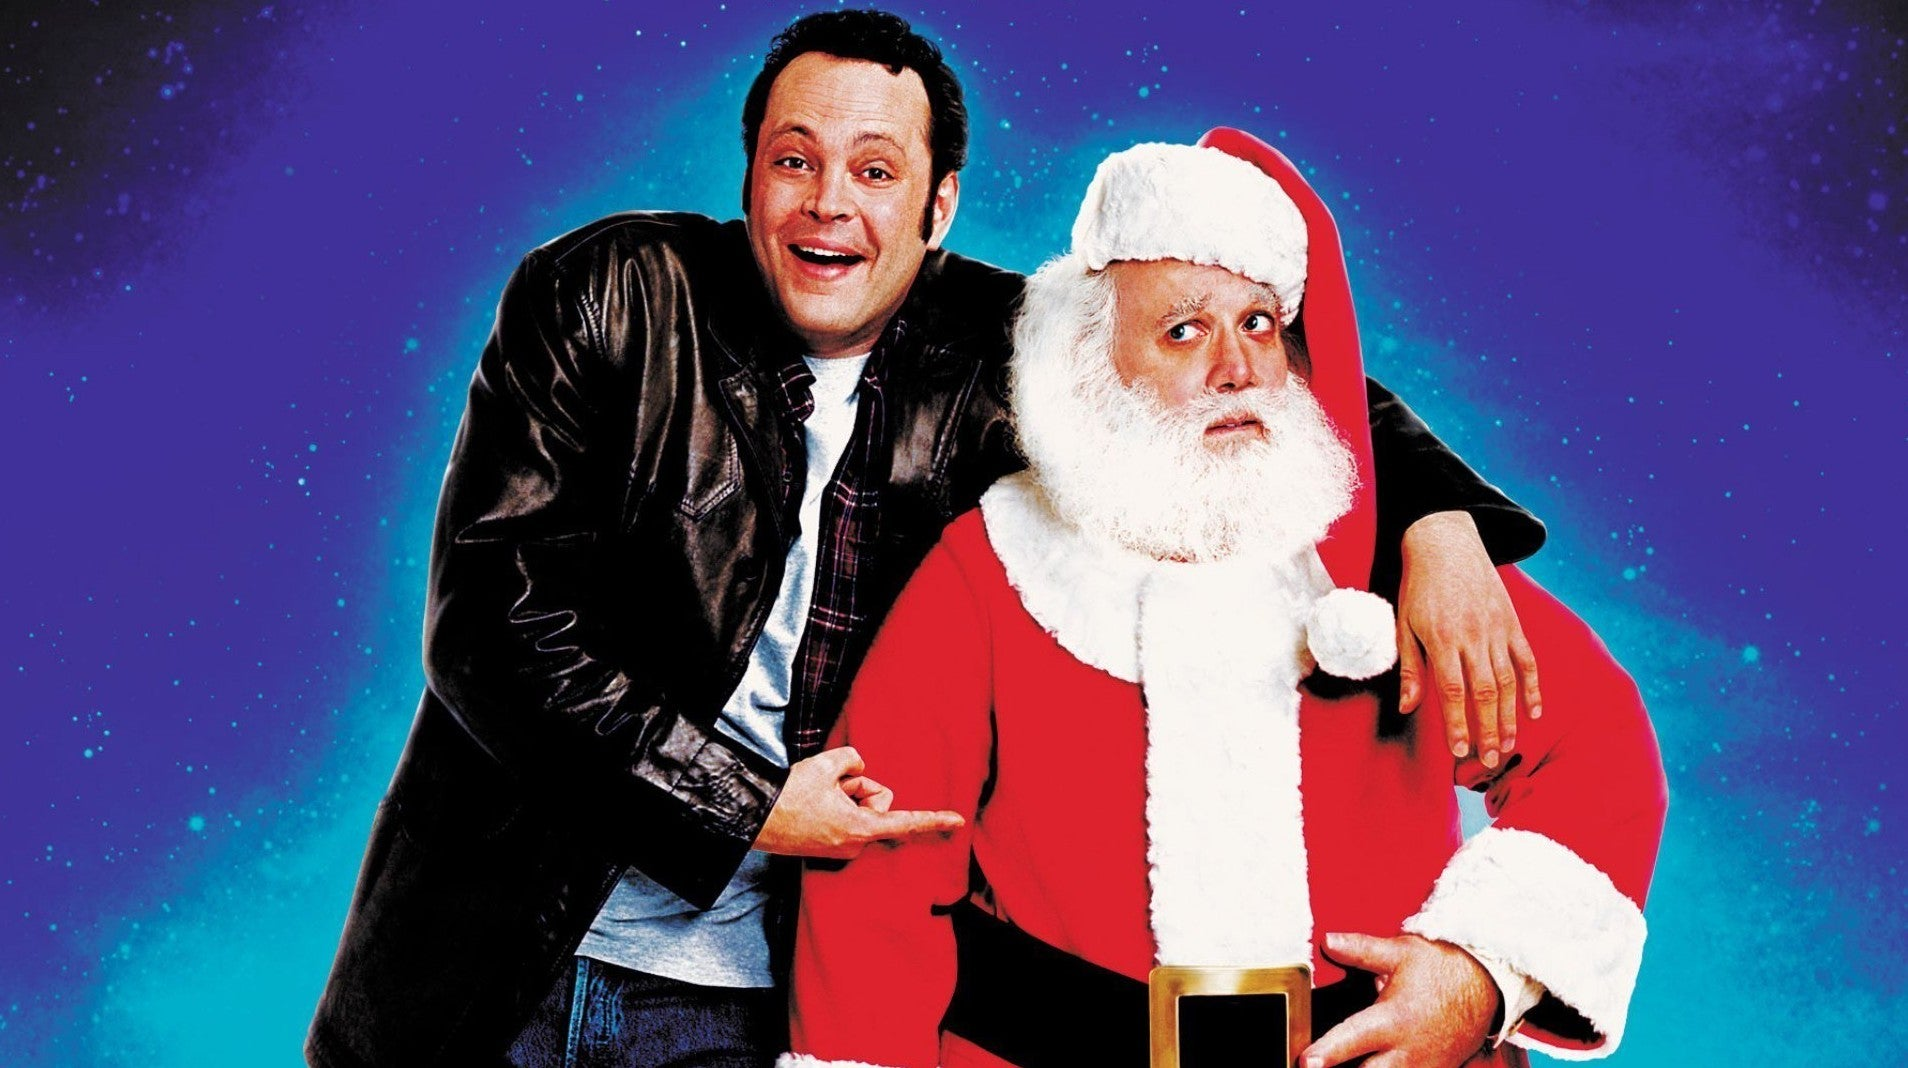 Fred claus online